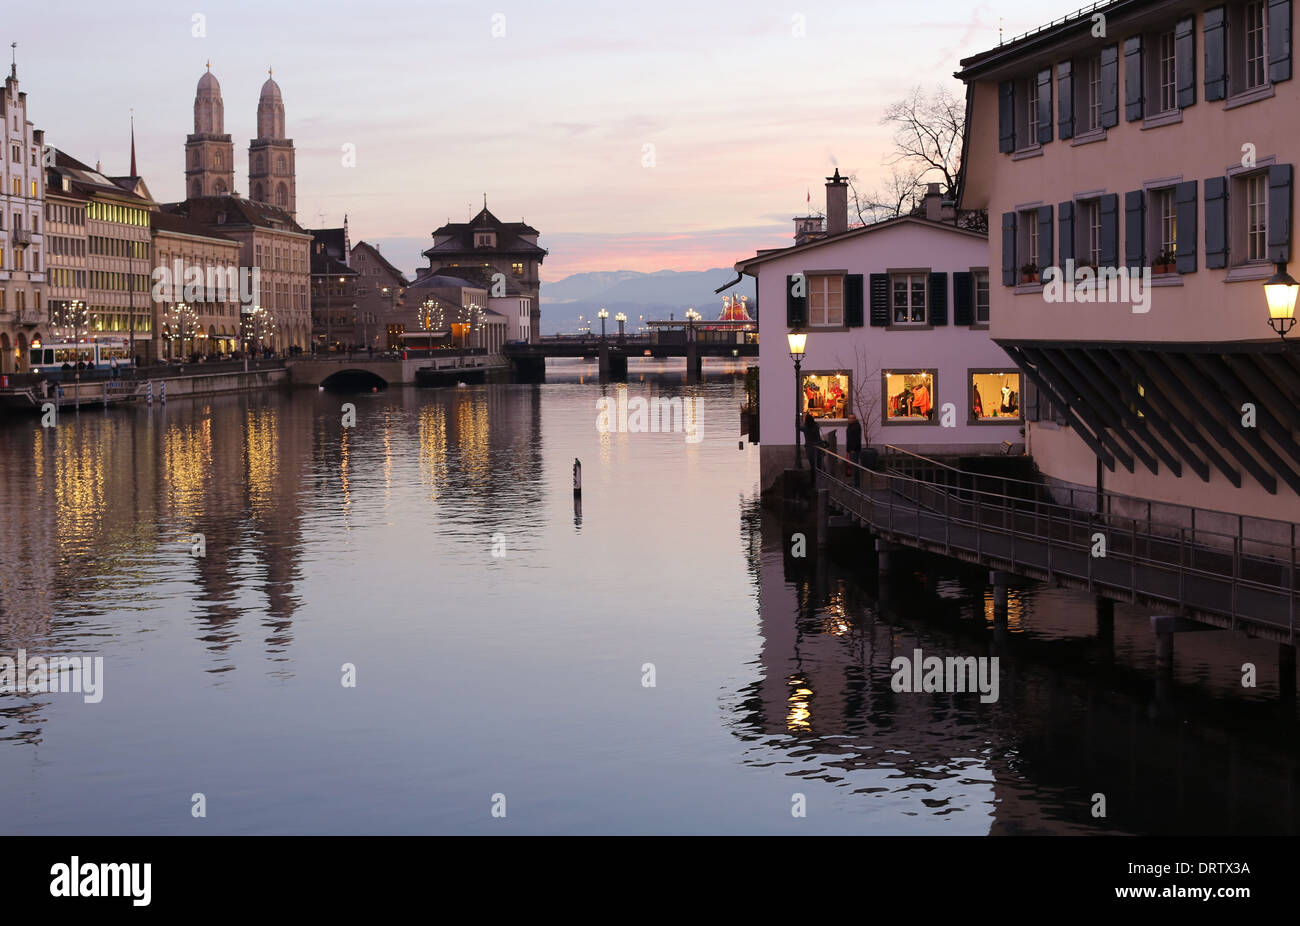 Evening view of Limmat river and embankments, Zurich, Switzerland - Stock Image